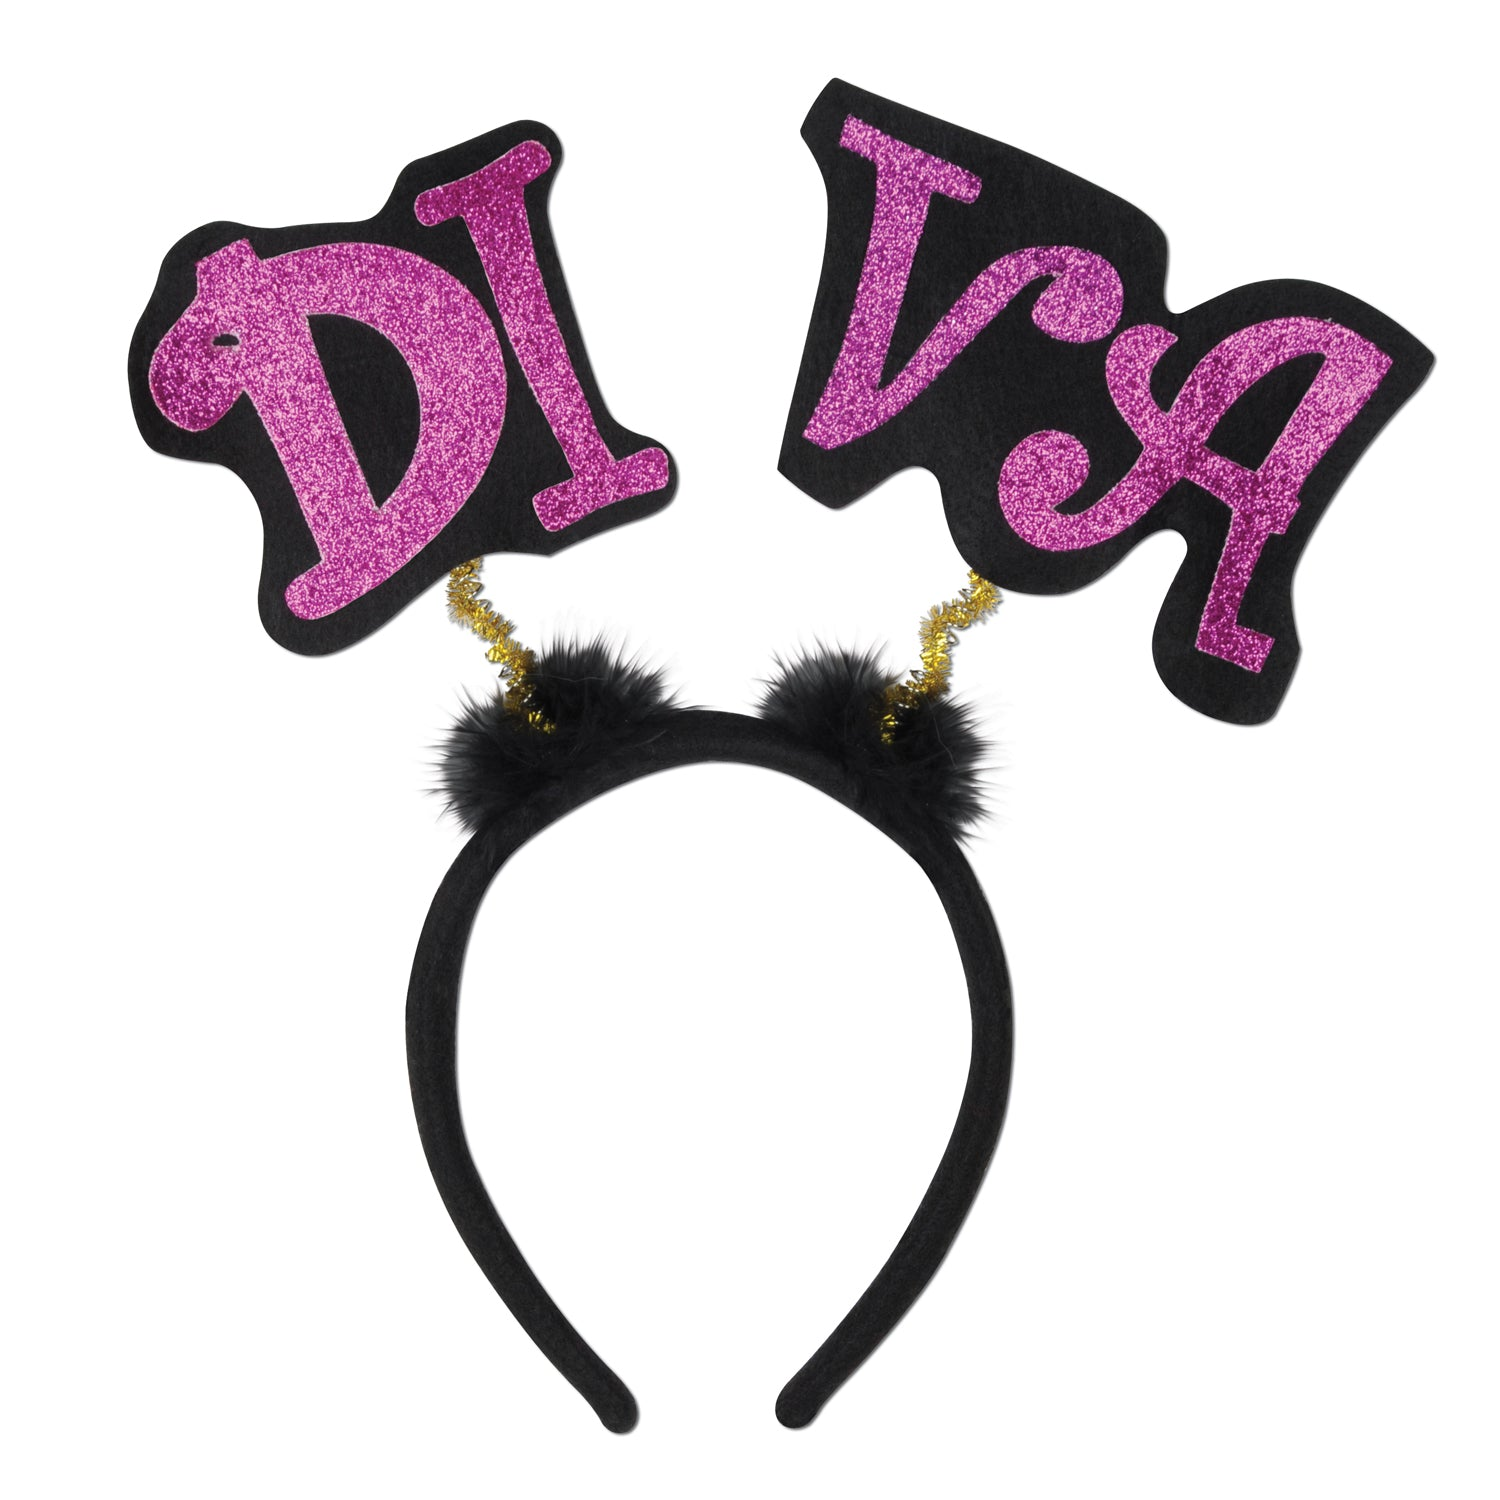 Glittered Diva Boppers by Beistle - Diva/Drama Queen Theme Decorations